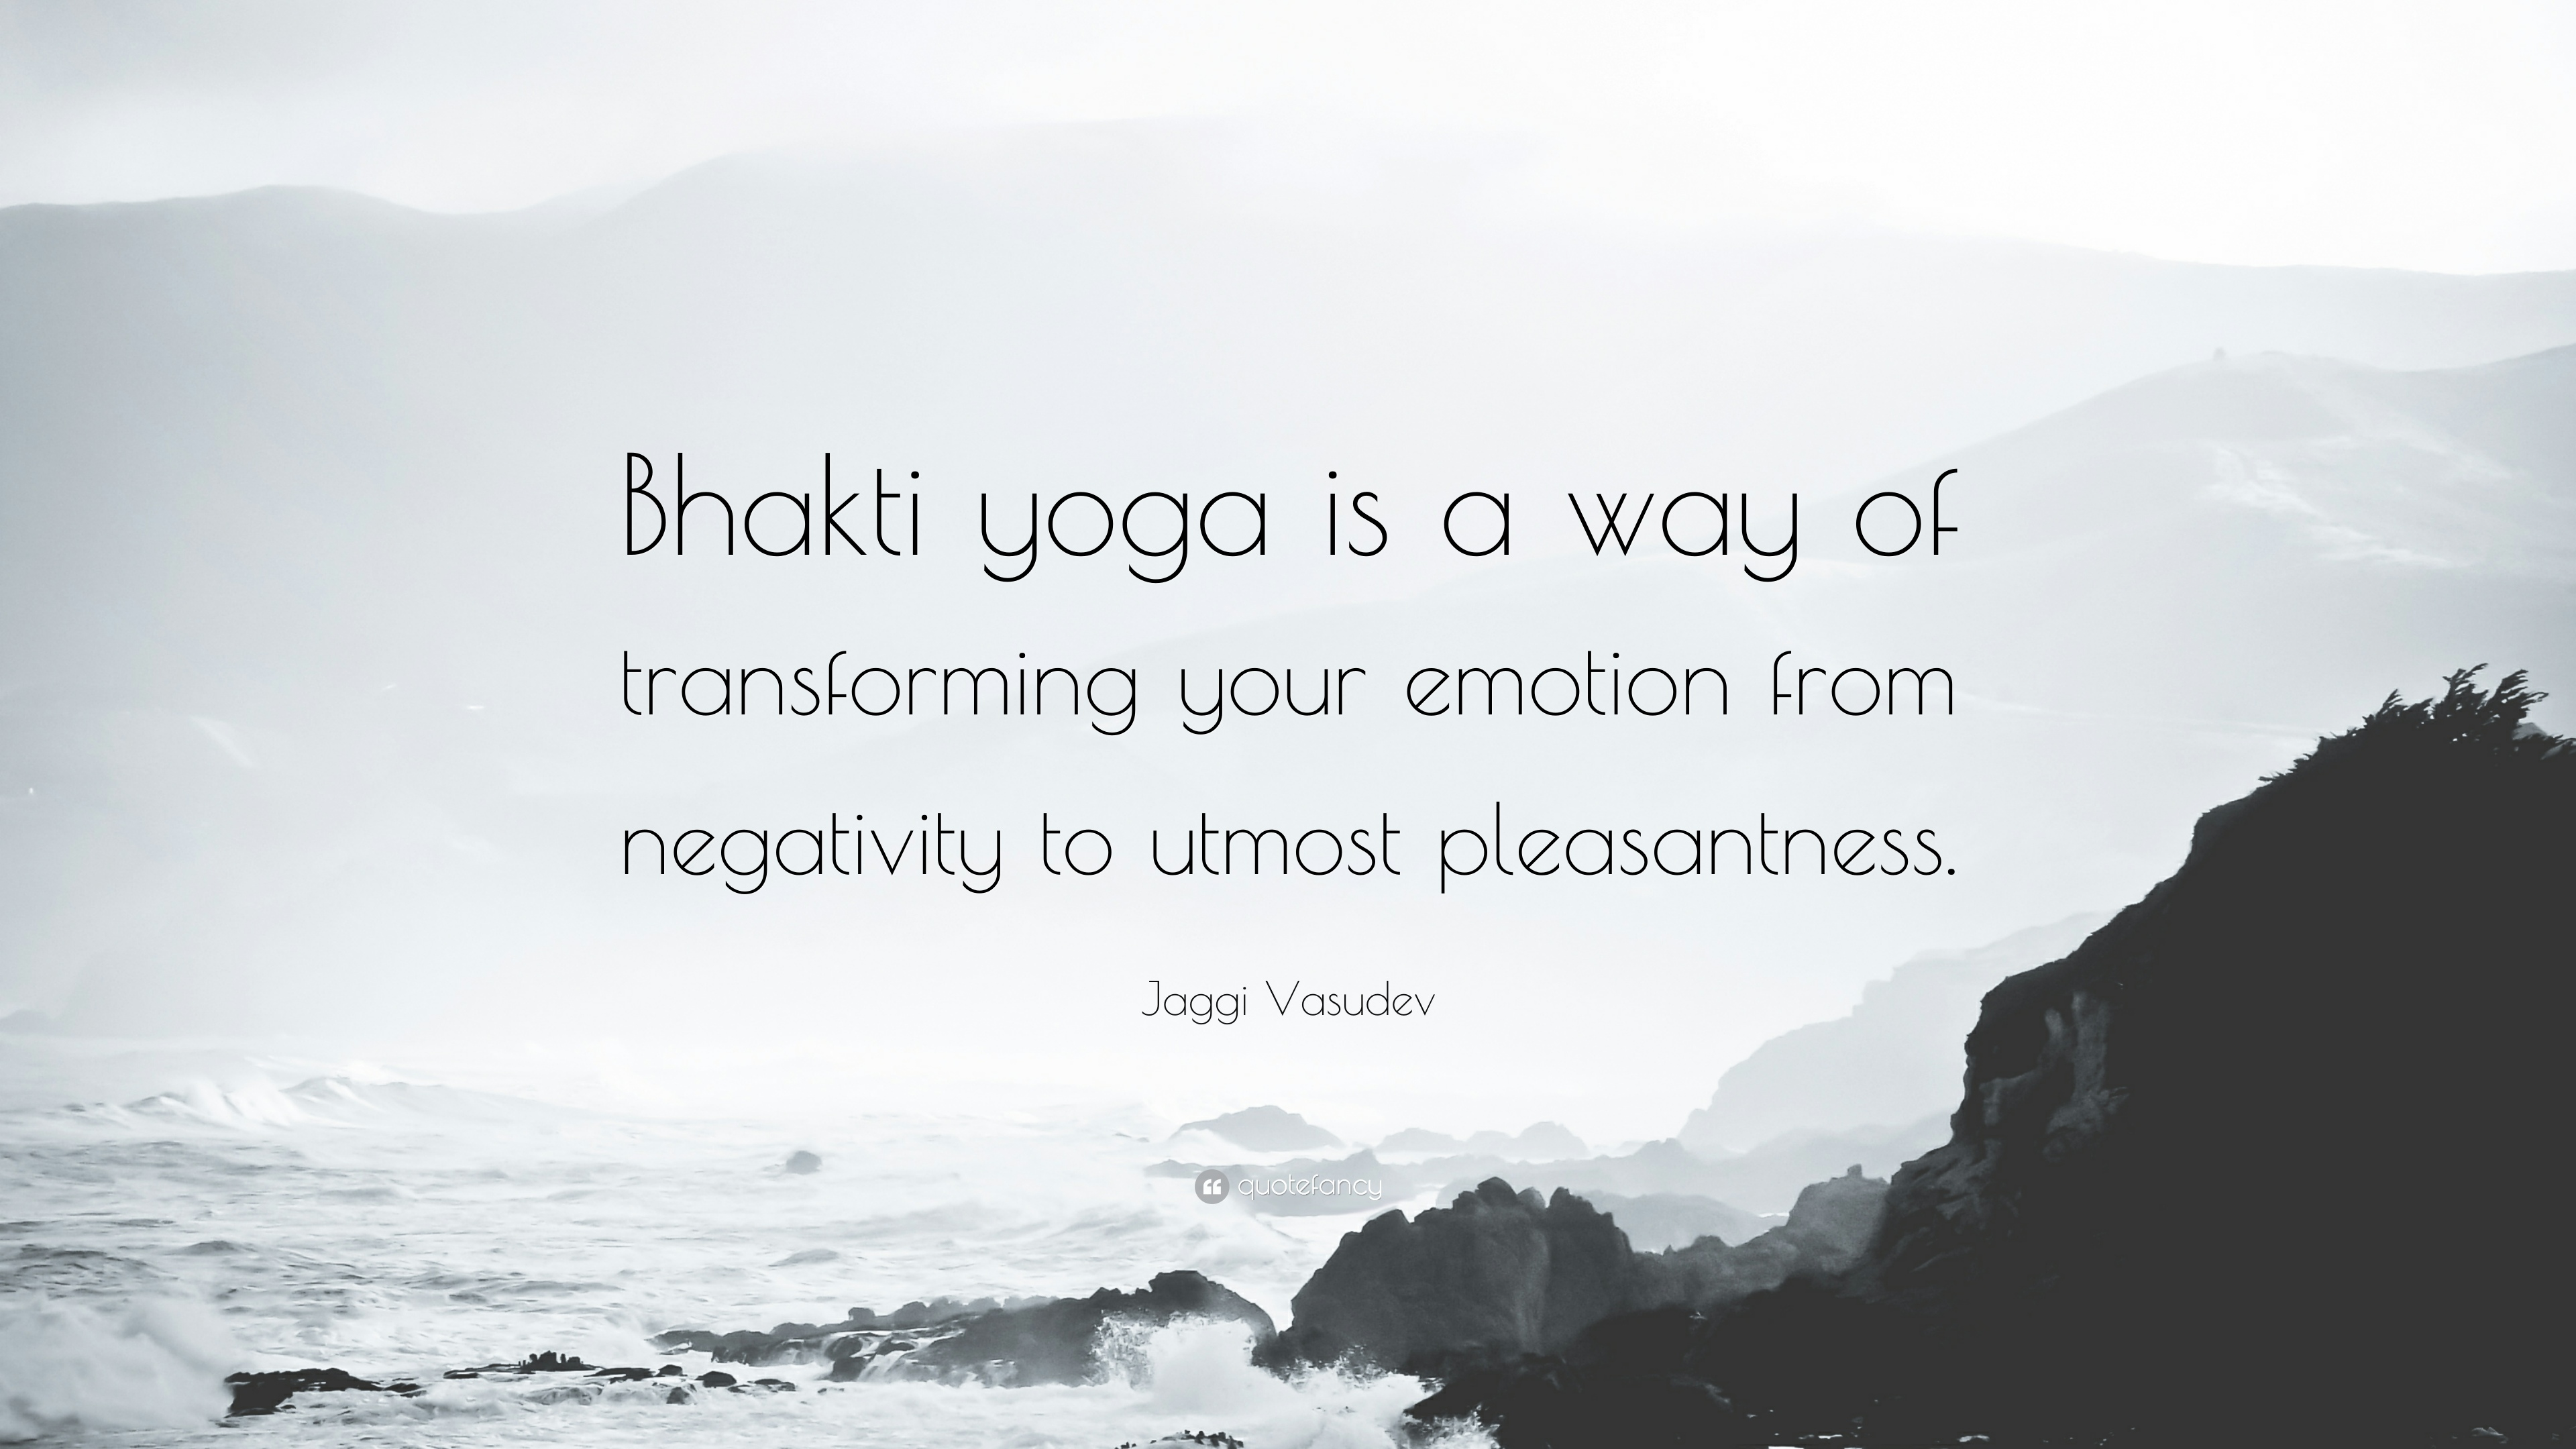 Jaggi Vasudev Quote Bhakti Yoga Is A Way Of Transforming Your Emotion From Negativity To Utmost Pleasantness 7 Wallpapers Quotefancy